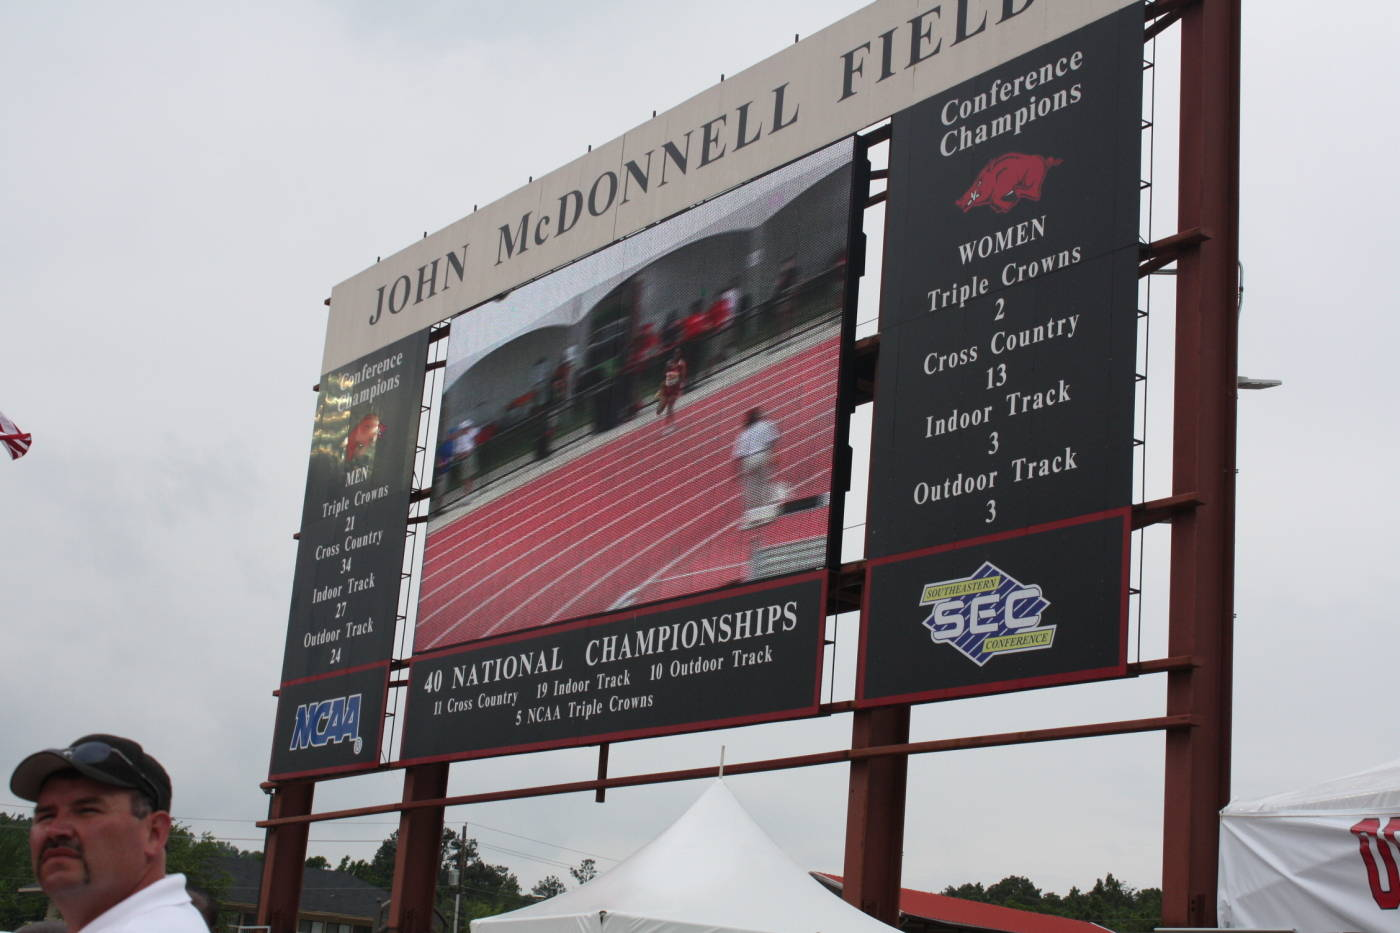 The 4x100m Relay on the big board.